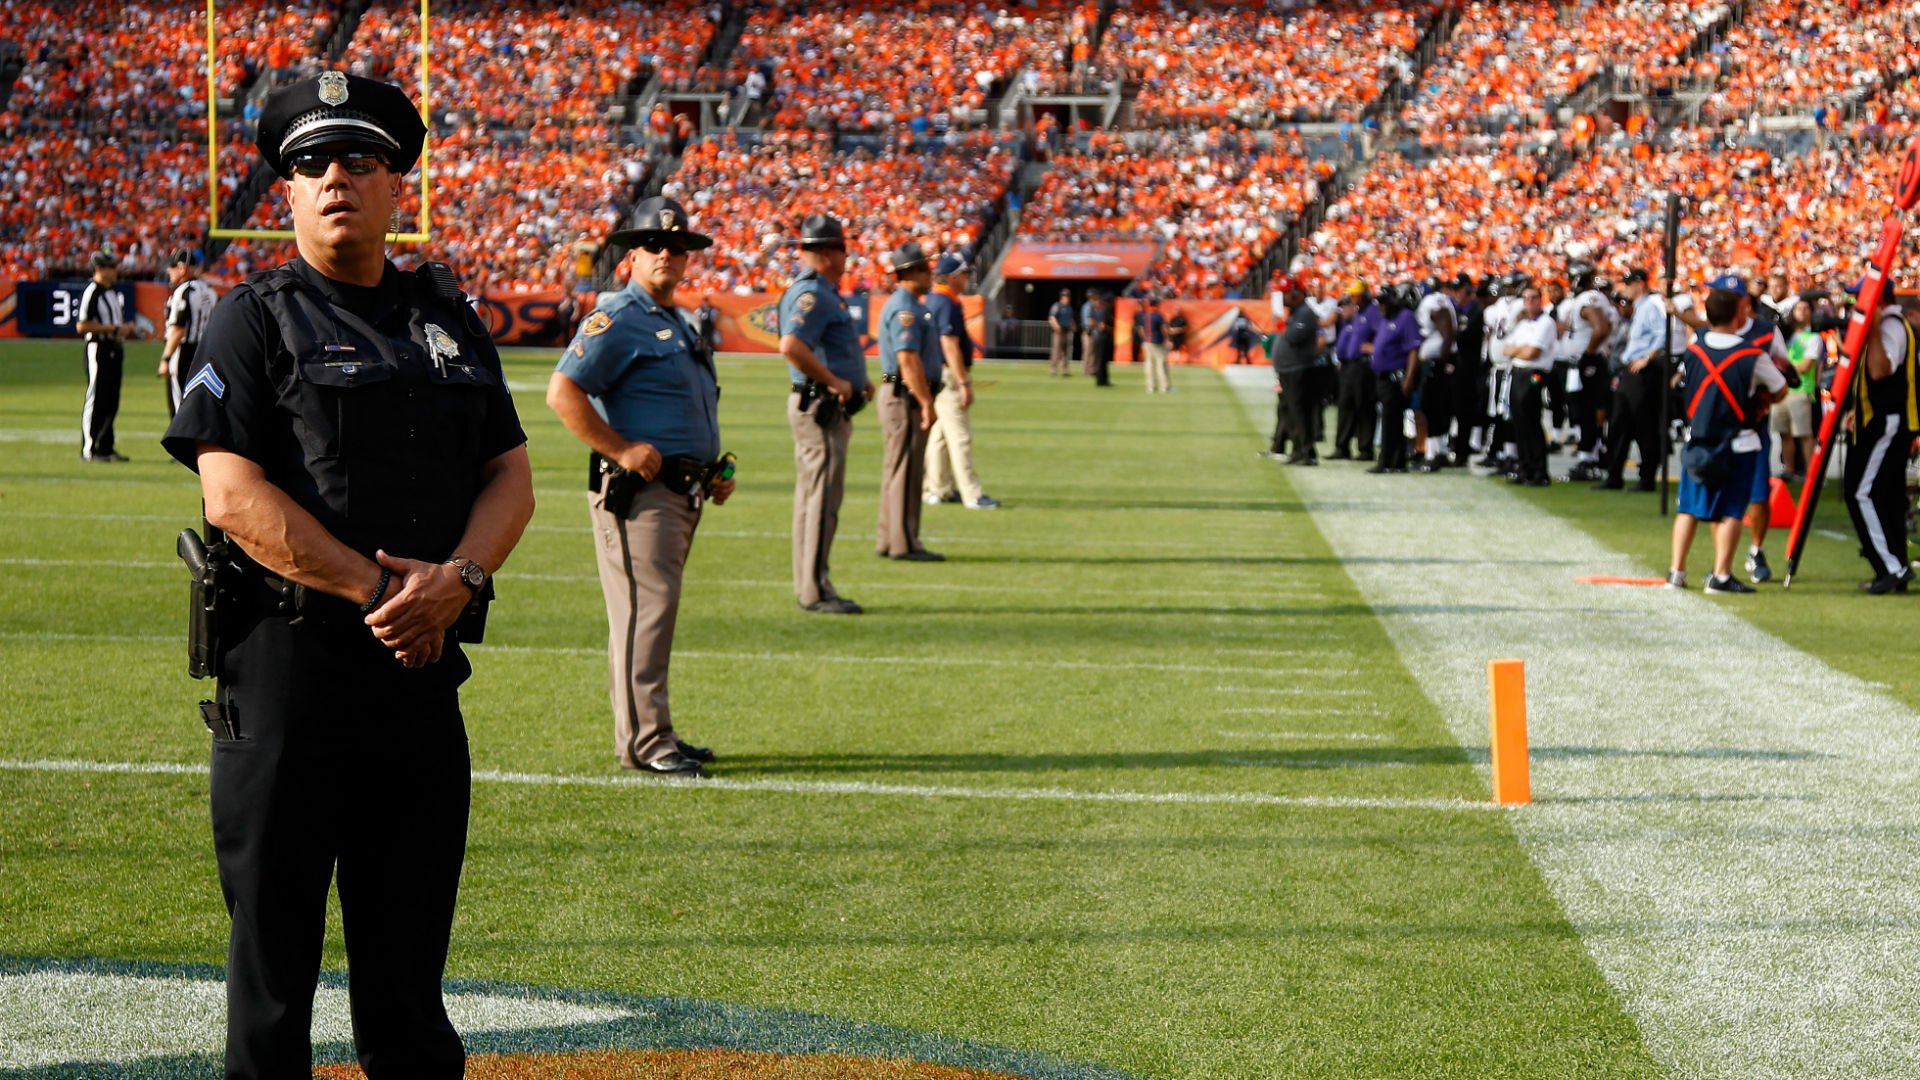 NFL stadium security-120315-getty-ftr.jpg